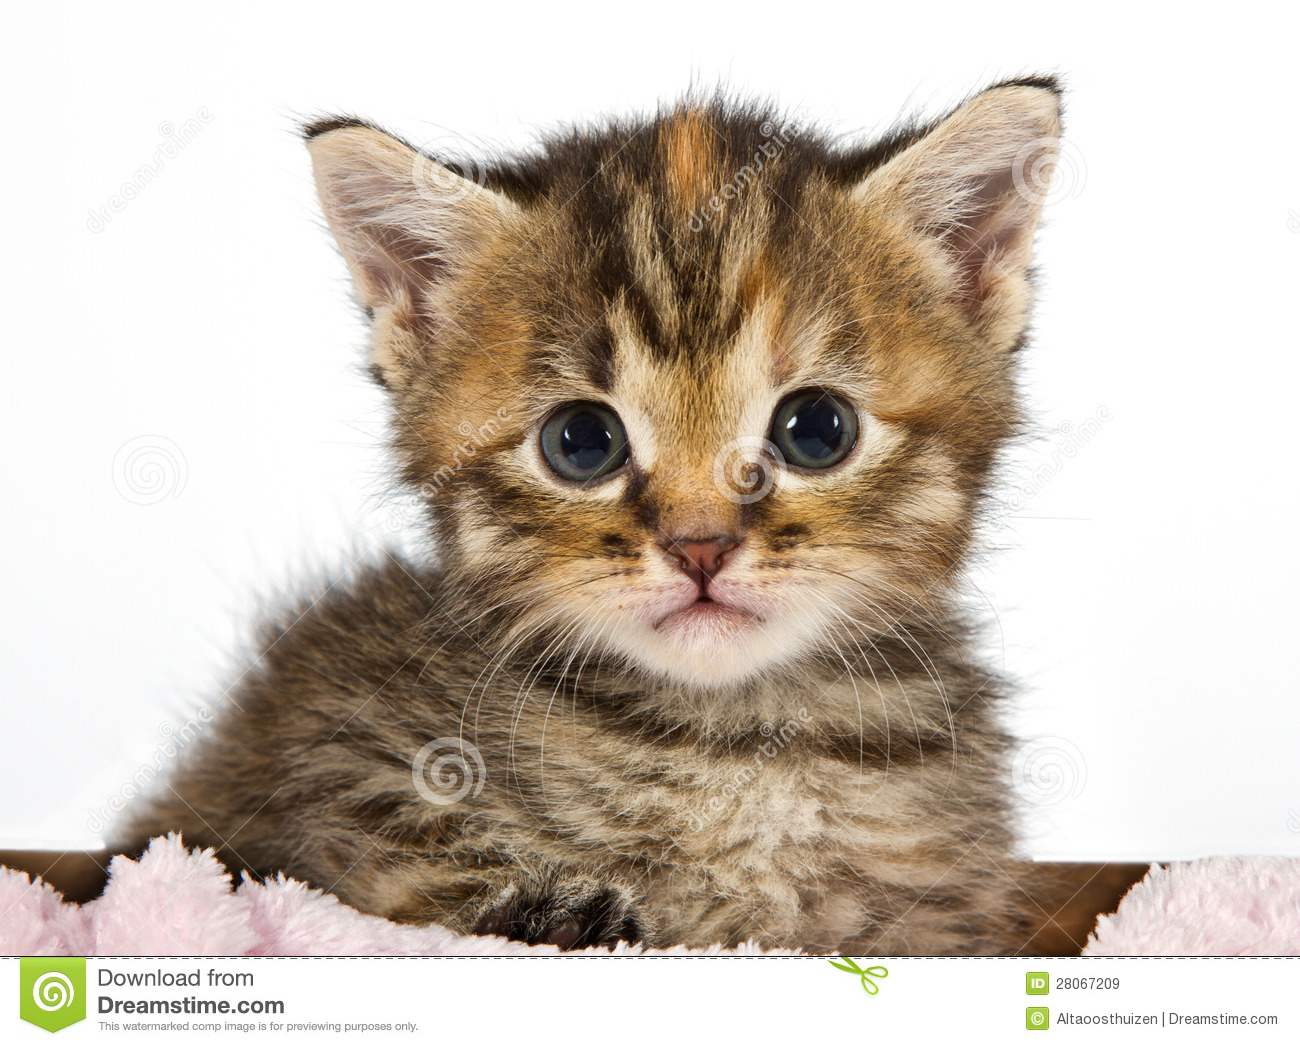 Cute Cat Gif Wallpaper Kitten Looking Adorable And Cute Royalty Free Stock Images